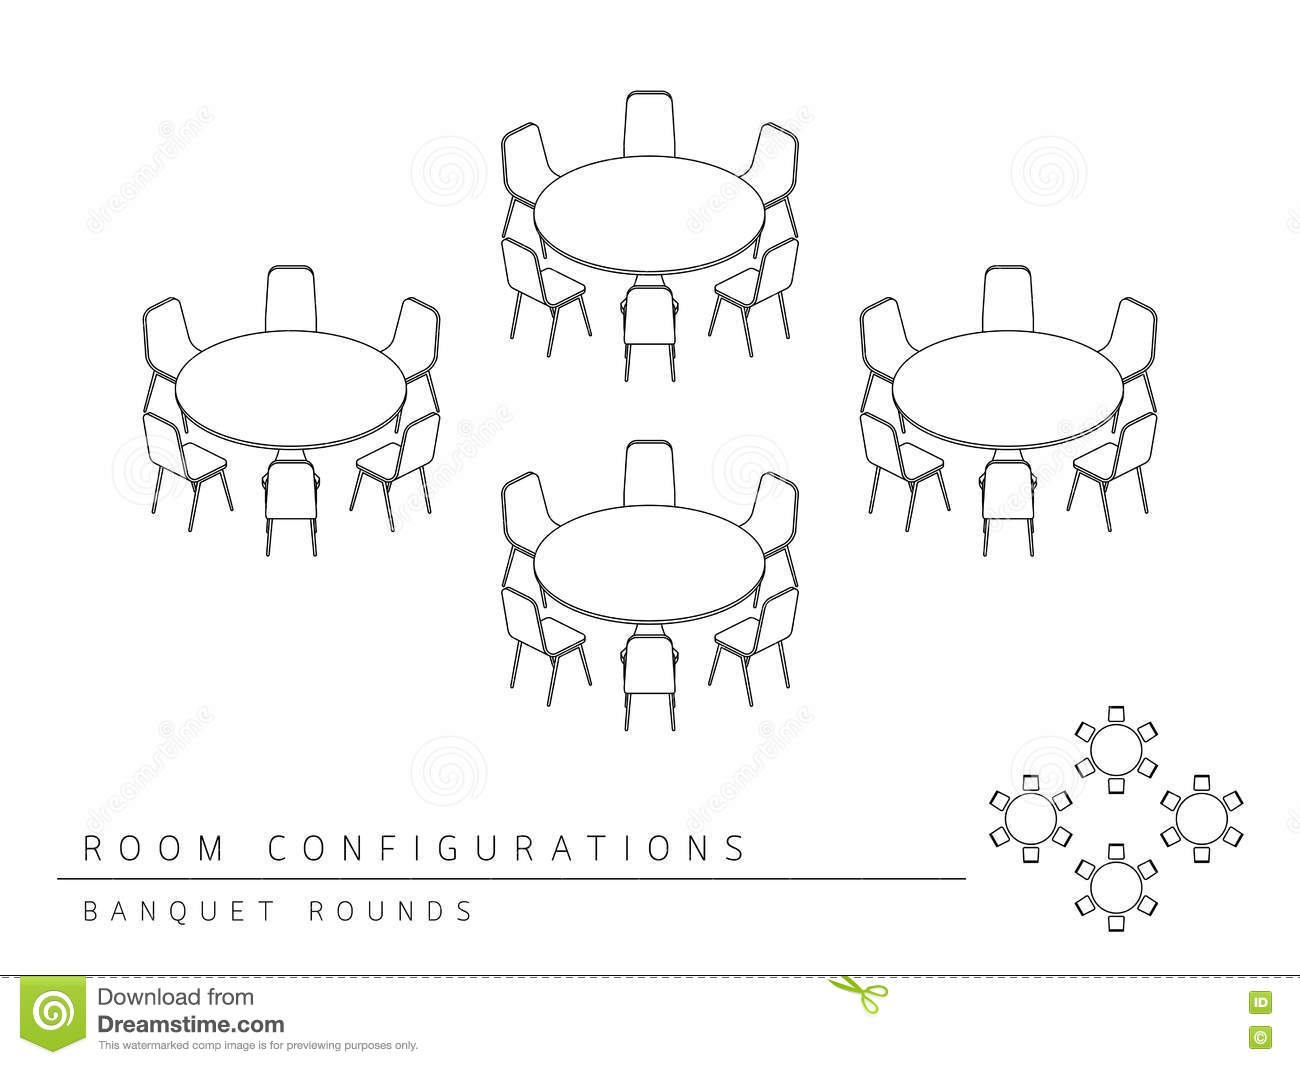 hight resolution of meeting room setup layout configuration banquet rounds style